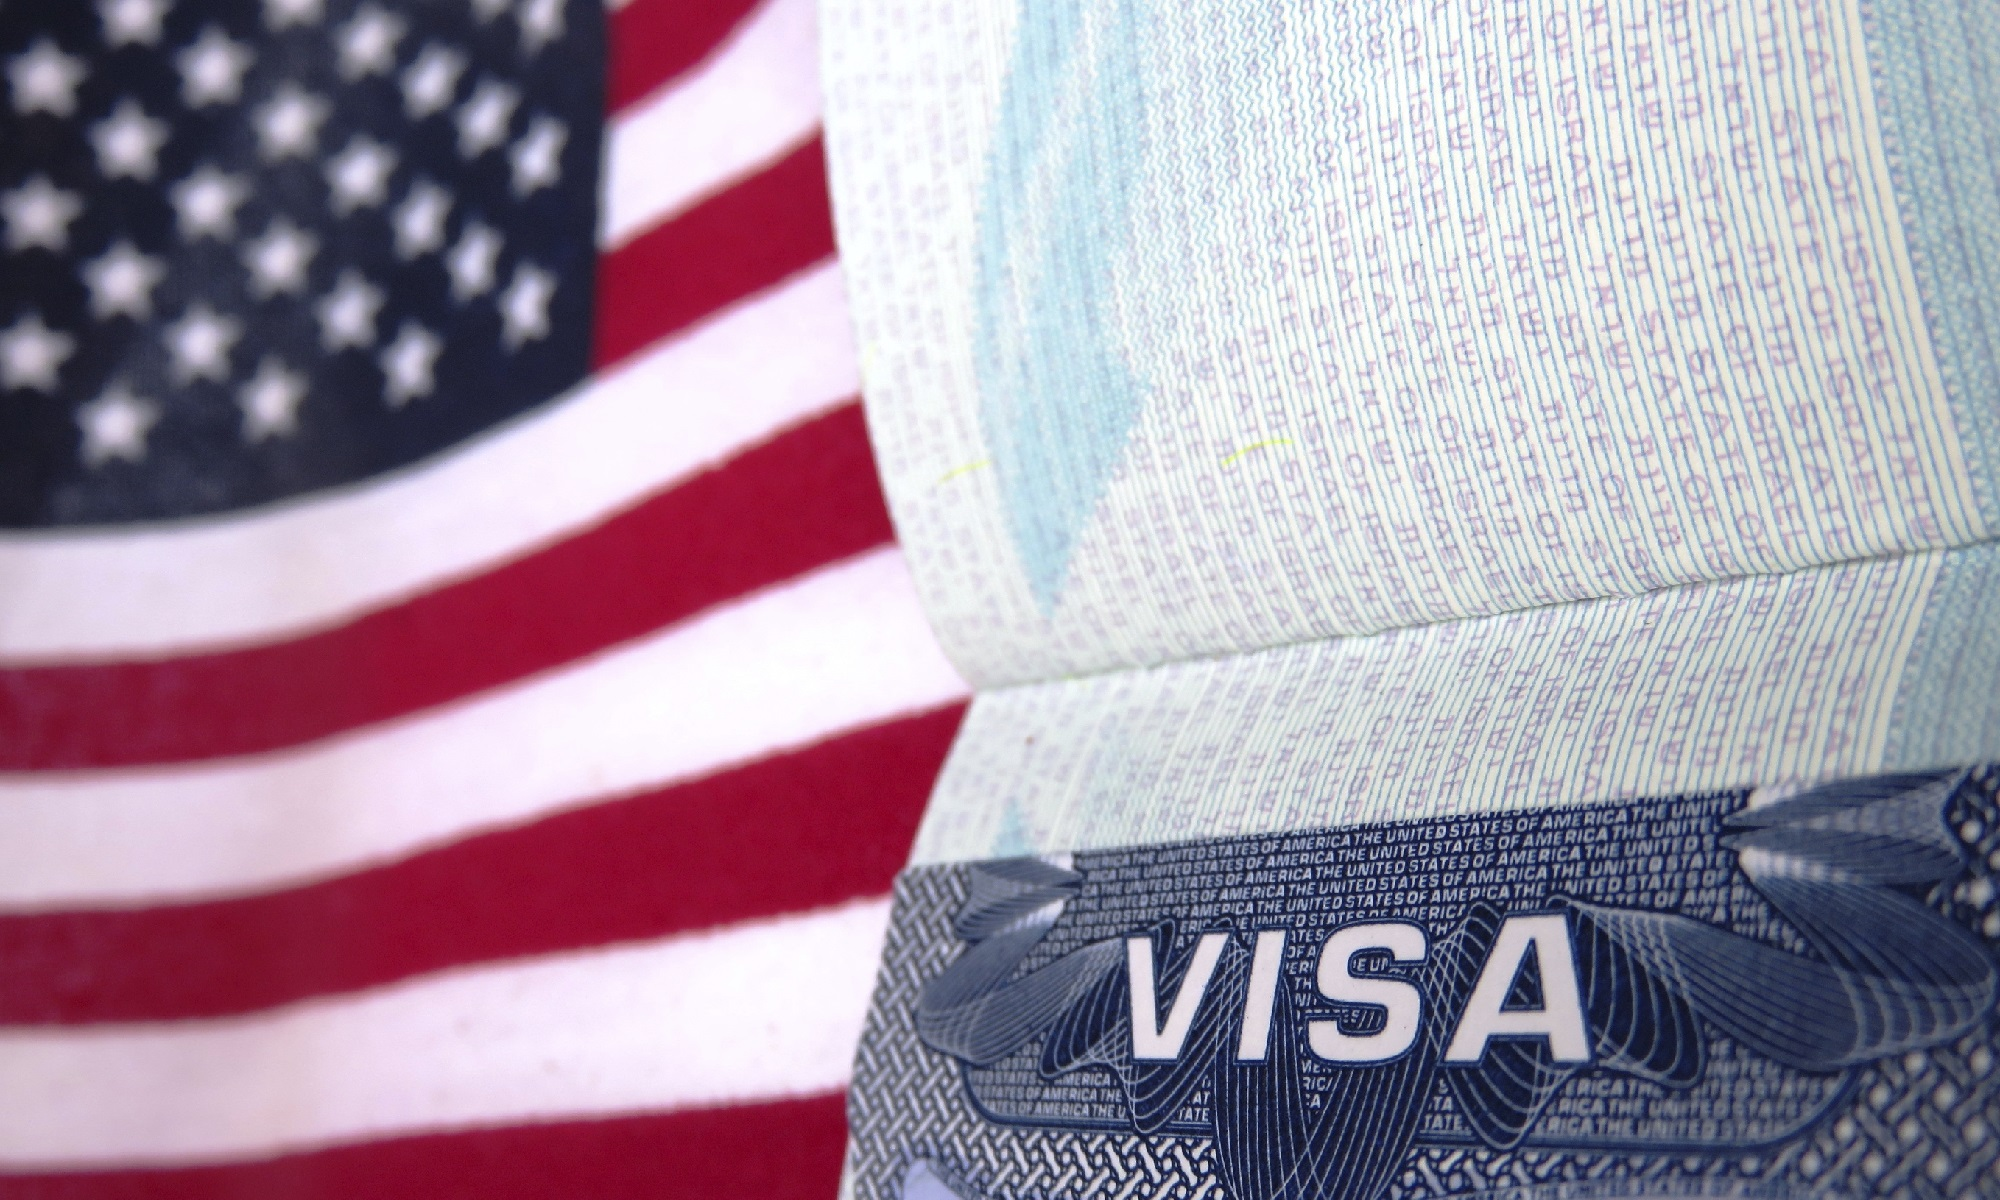 American visa and flag